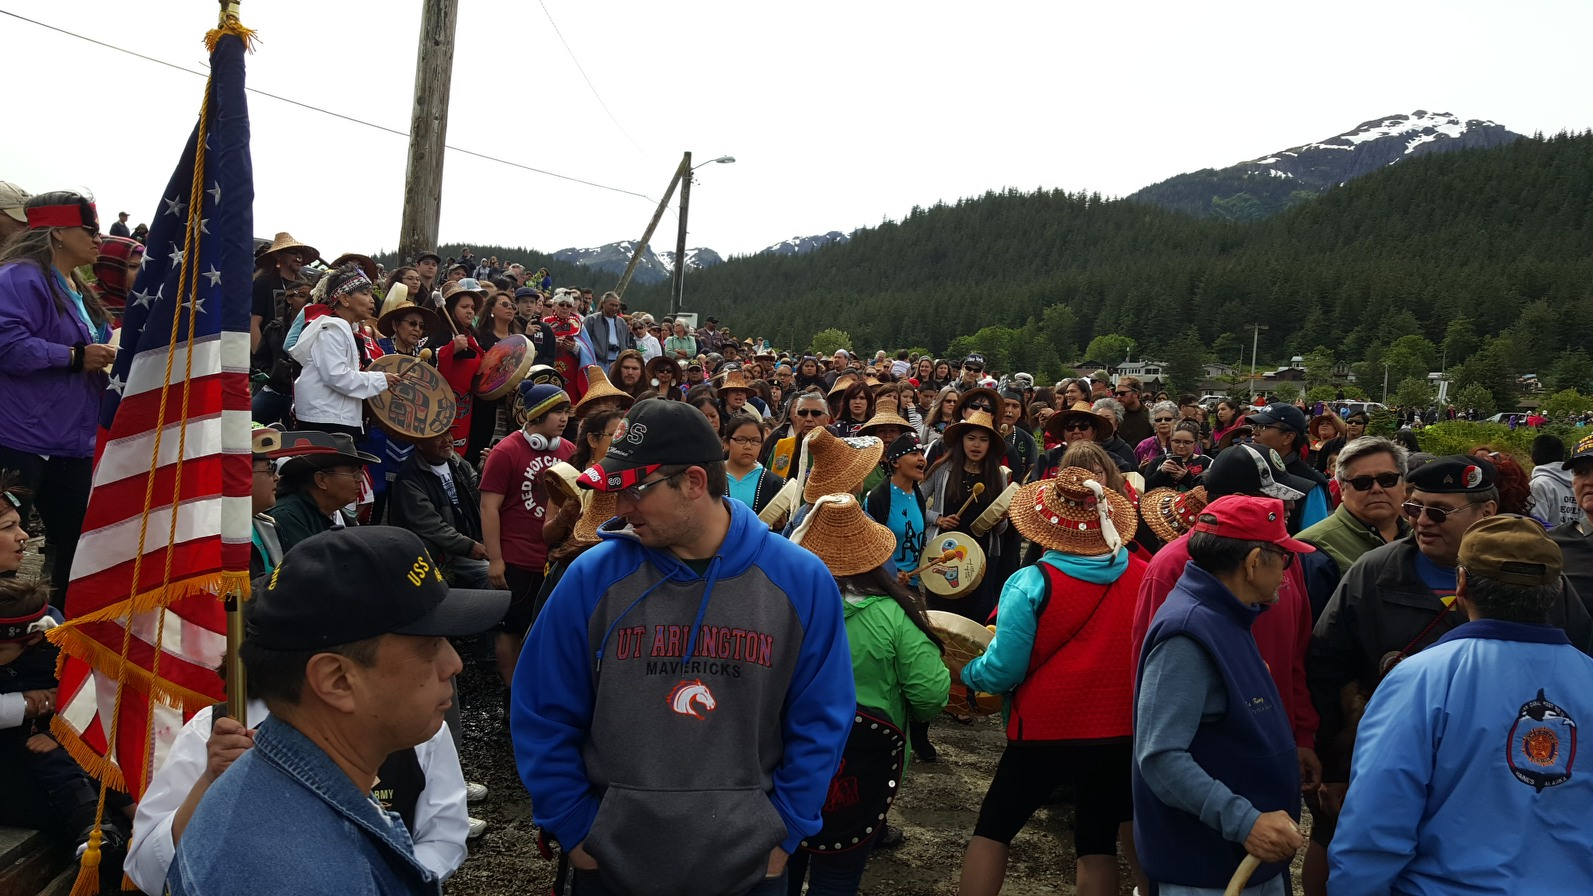 Sandy Beach canoe arrival crowd celebration 2016